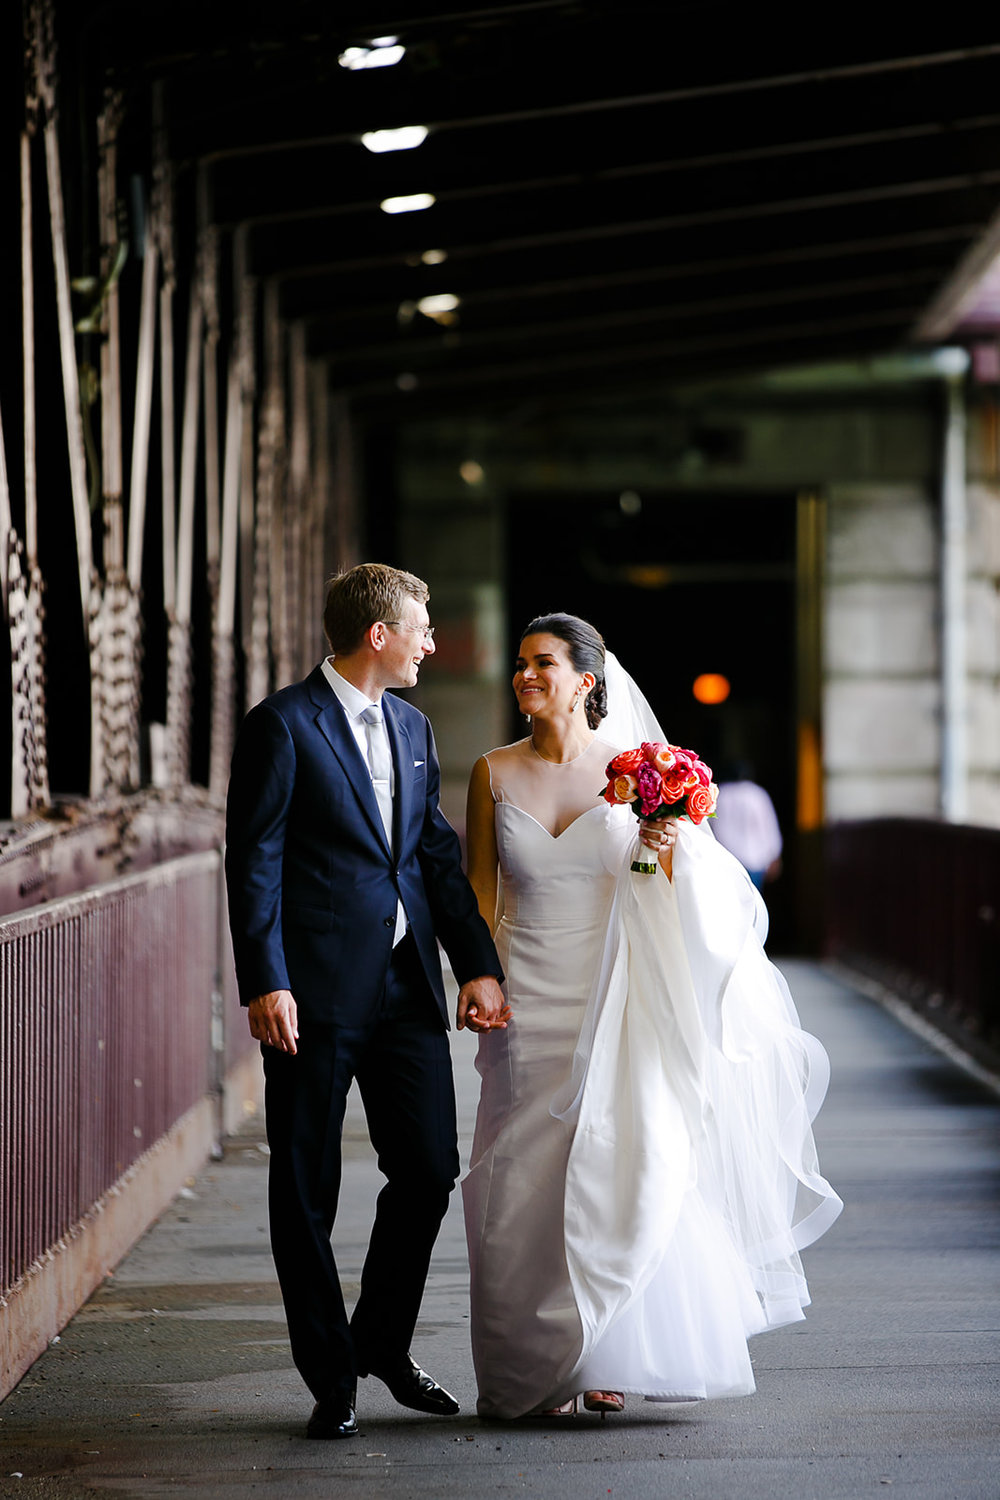 Lower Michigan Ave is one of our secret hidden photo locations. Even on the busiest weekends in the city (like Labor Day weekend) it is never crowded and it's also covered so it's a great rainy day wedding photo location spot!